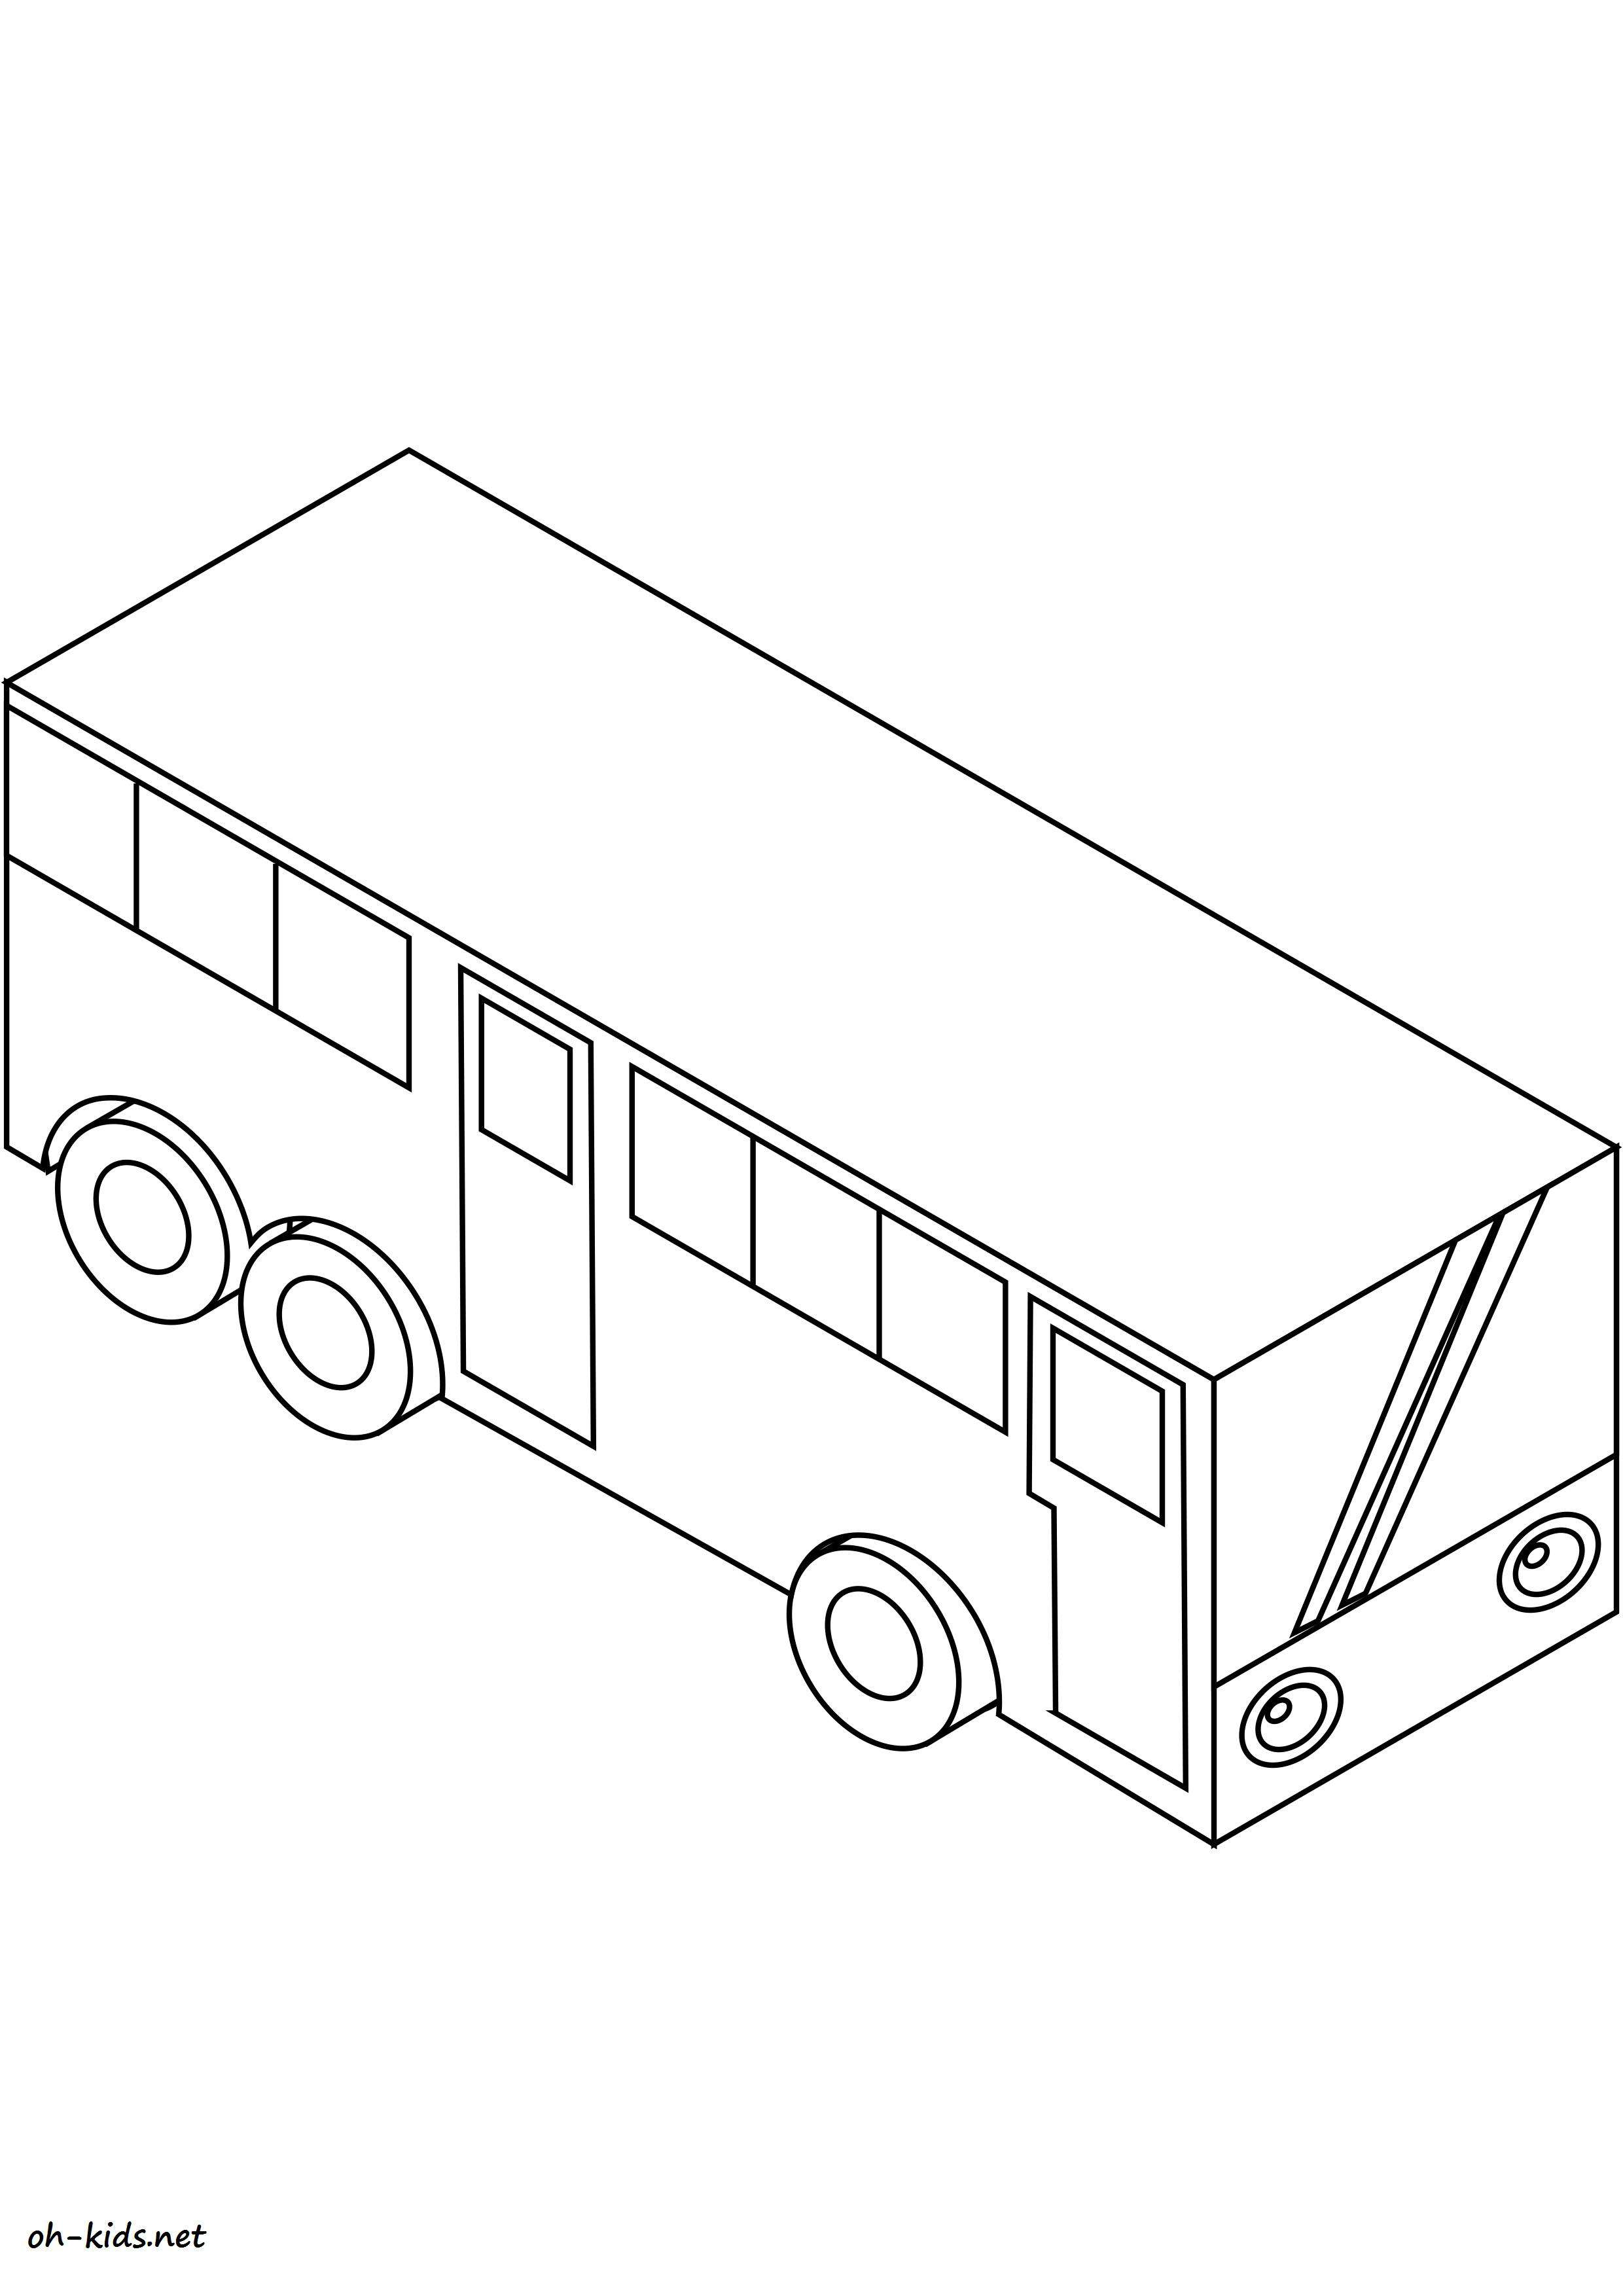 Coloriage transport page 9 of 47 oh kids fr - Autocar dessin ...